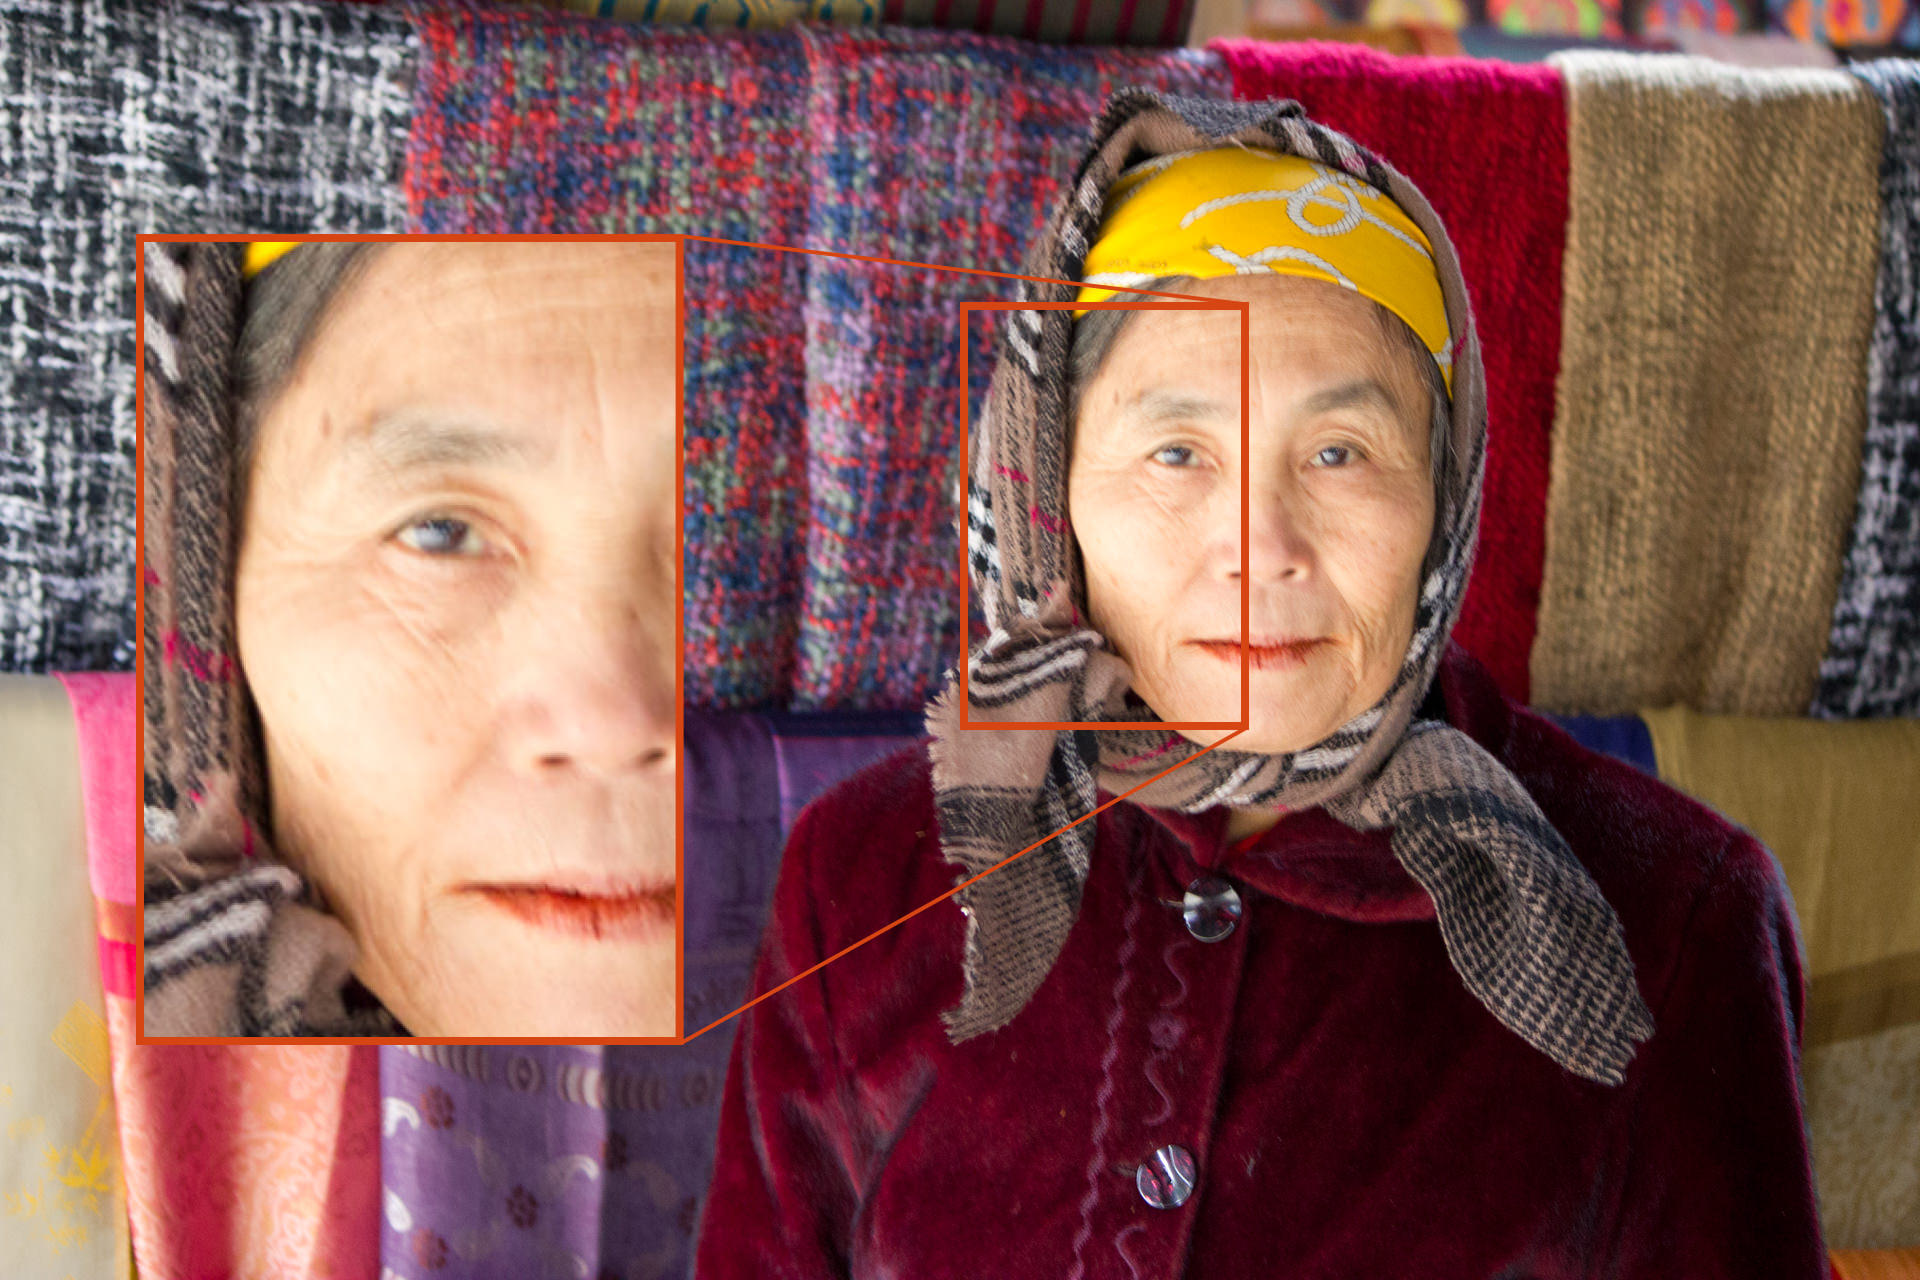 A blurred portrait of an old woman as a result of camera shake